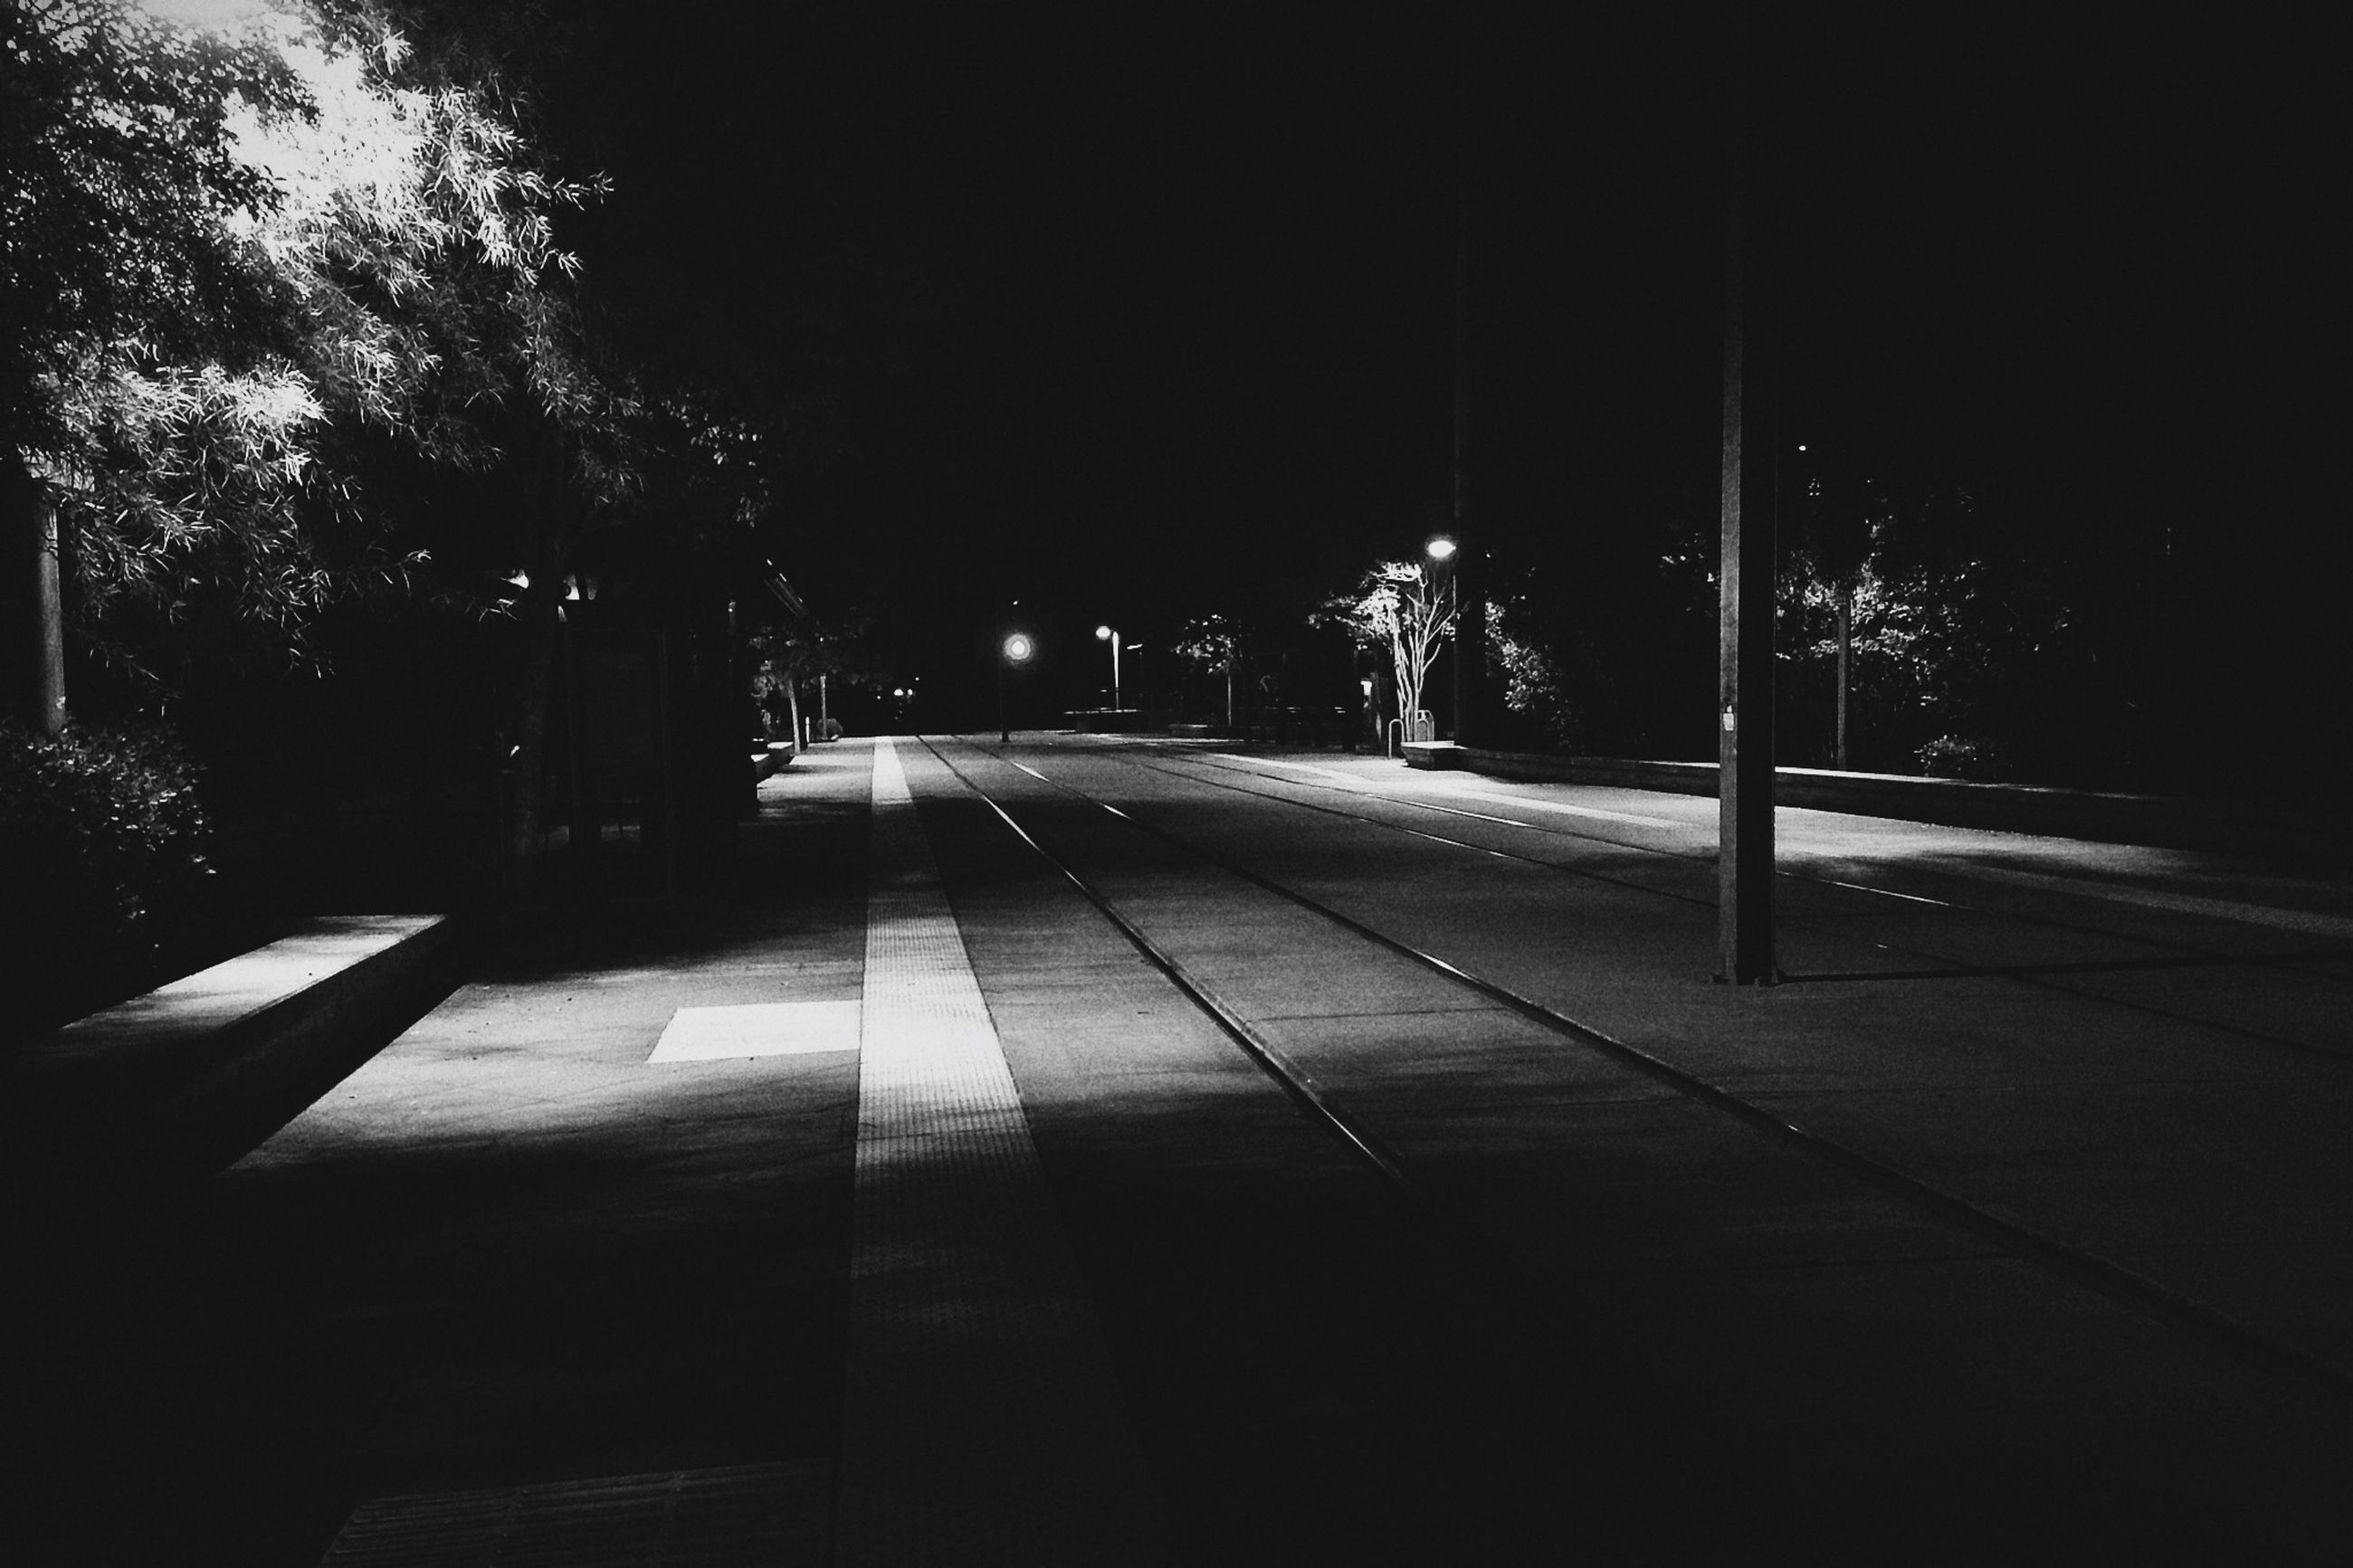 night, illuminated, street light, the way forward, tree, built structure, architecture, street, building exterior, transportation, lighting equipment, road, empty, dark, clear sky, city, diminishing perspective, outdoors, no people, vanishing point